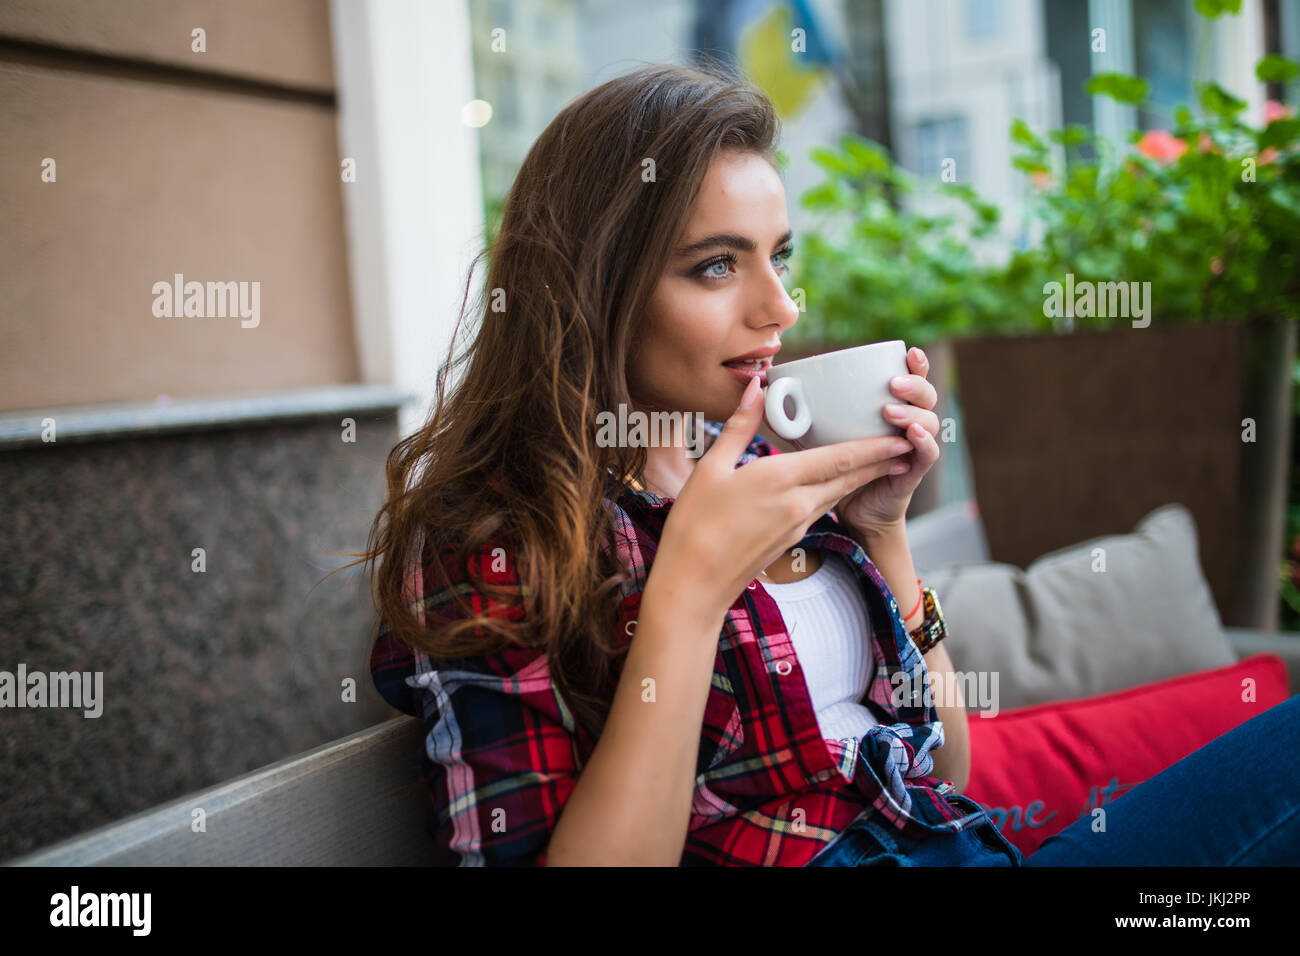 woman in city cafe drink coffee wait for somebody in cafe - Stock Image